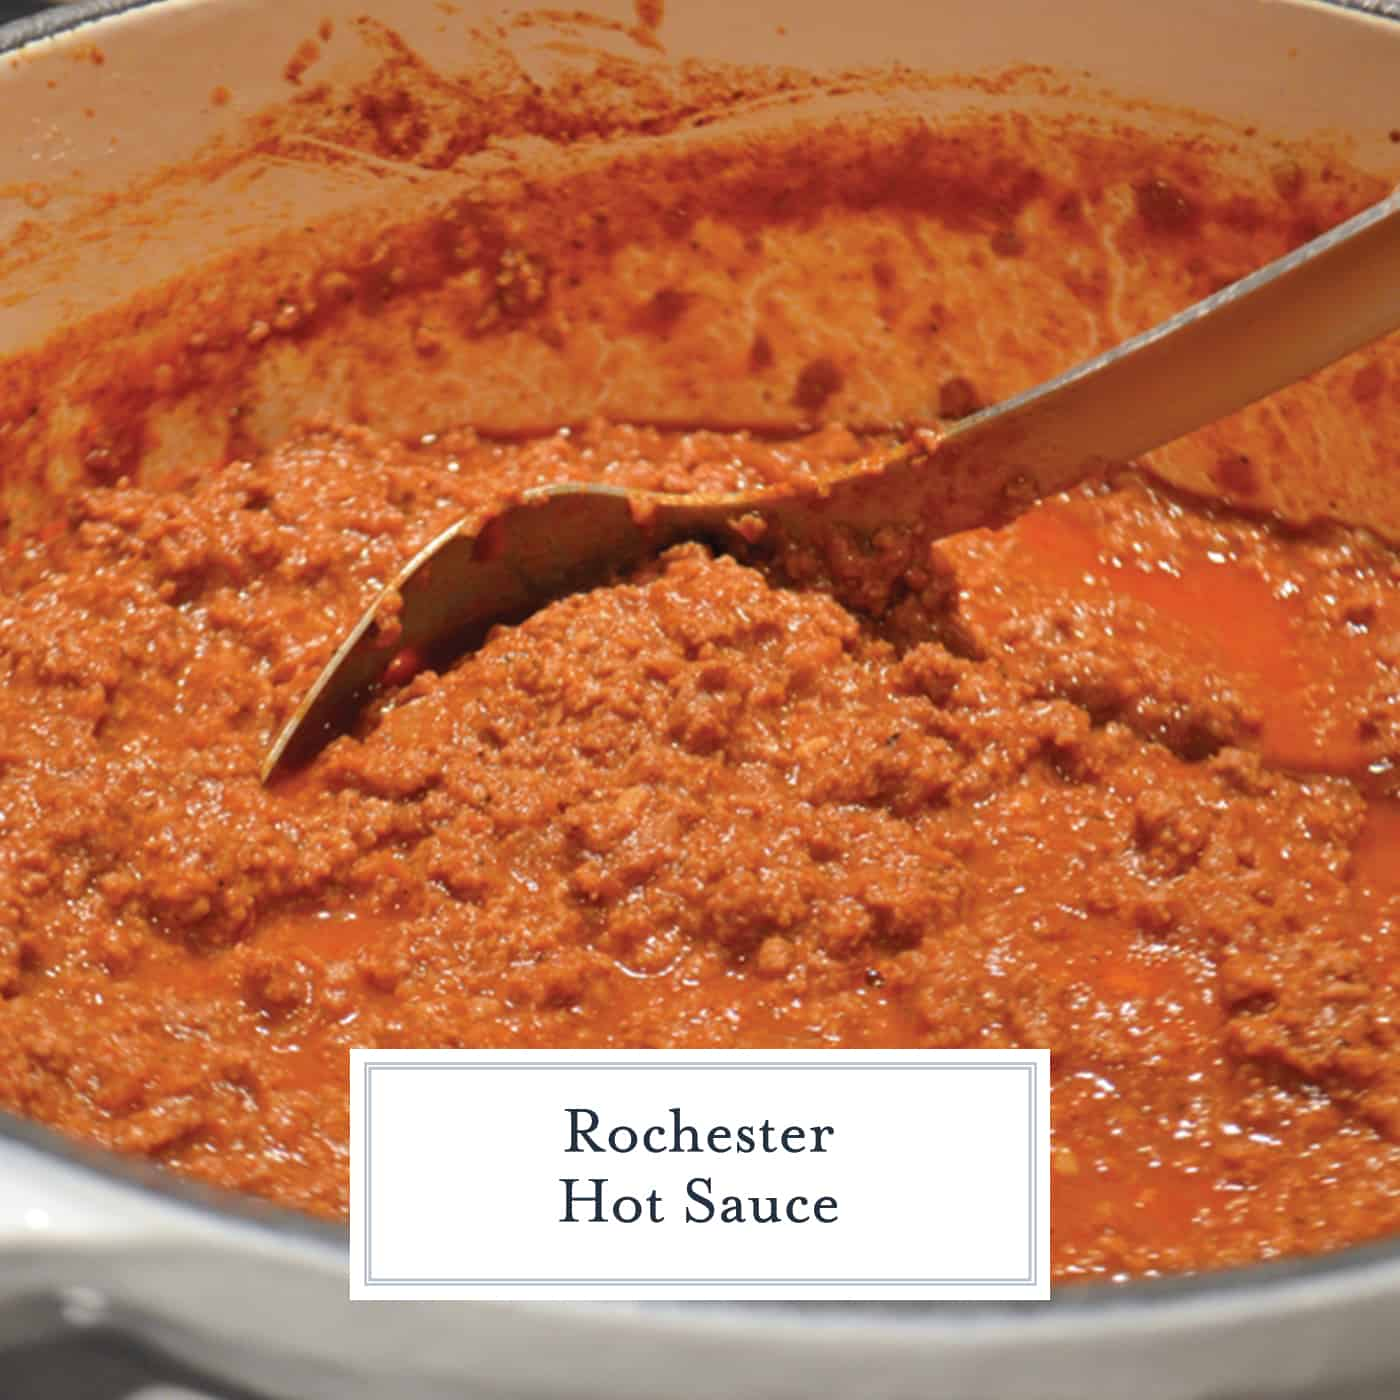 Rochester Hot Sauce is a ground beef and tomato based sauce used to top Garbage Plates. While it is served hot, it is not traditionally spicy. #hotsauce #garbageplates www.savoryexperiments.com